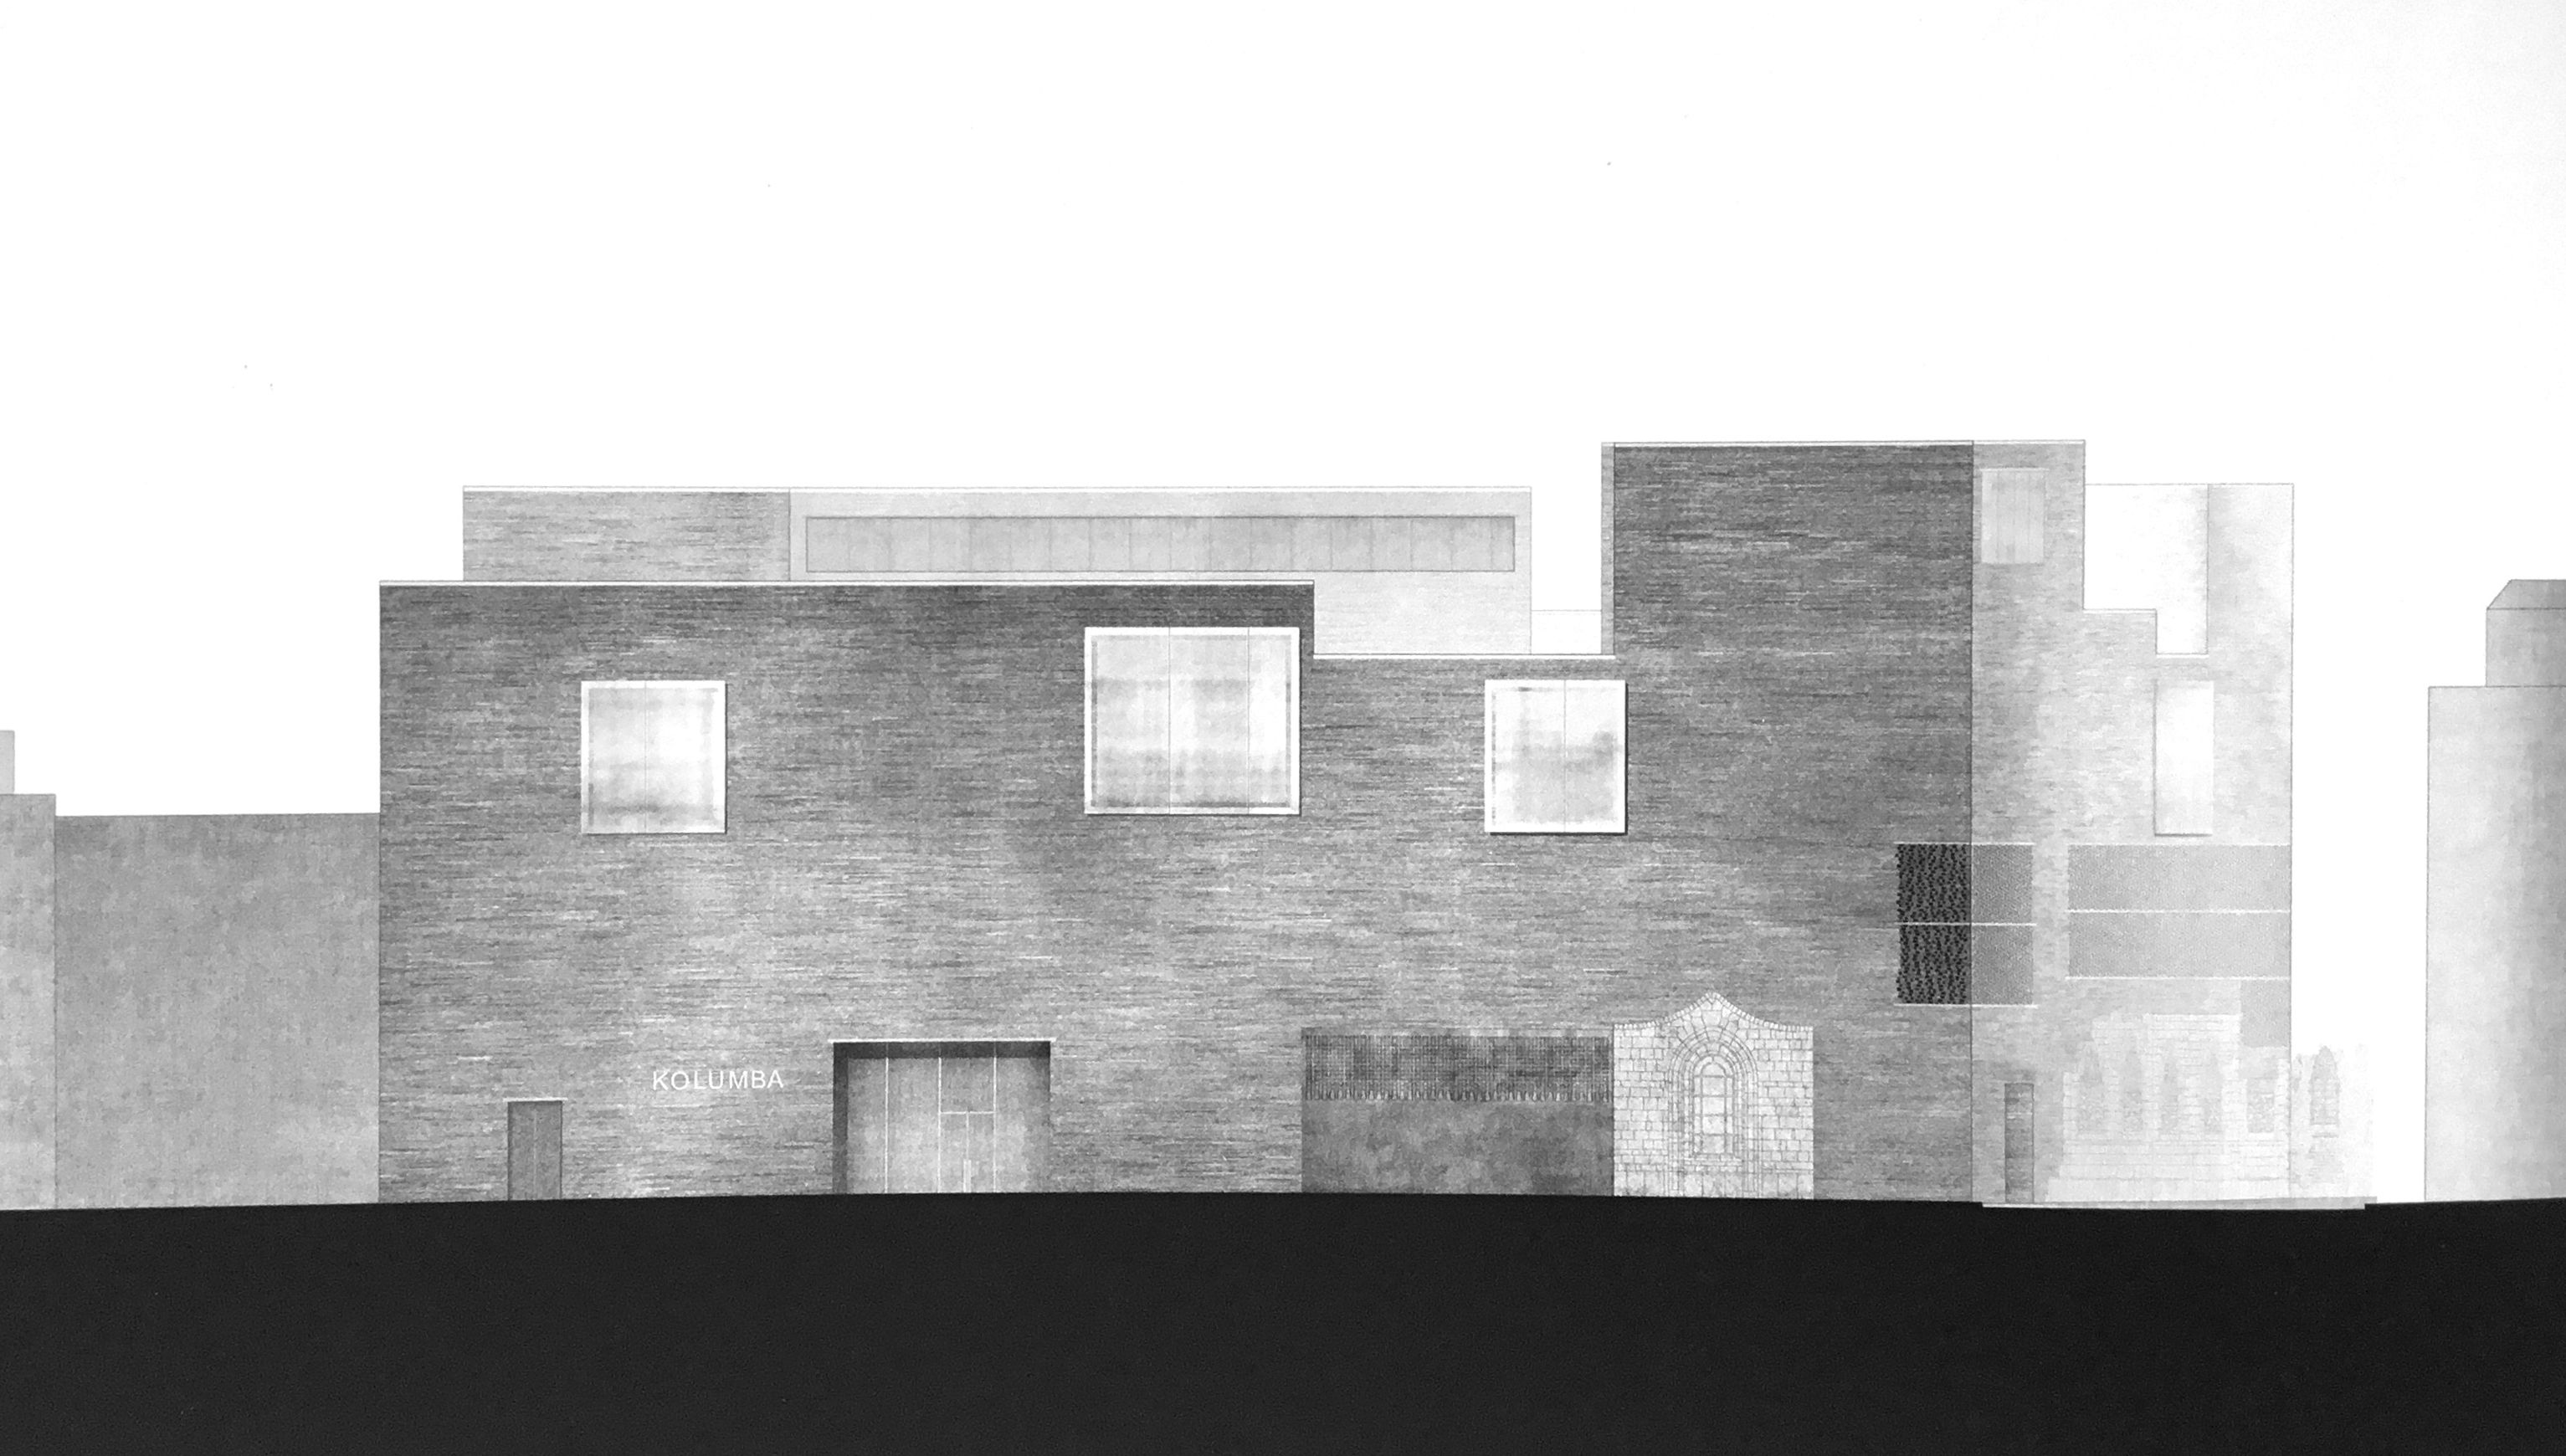 Kolumba Art Museum Cologne Germany. Peter Zumthor Rep Elevation